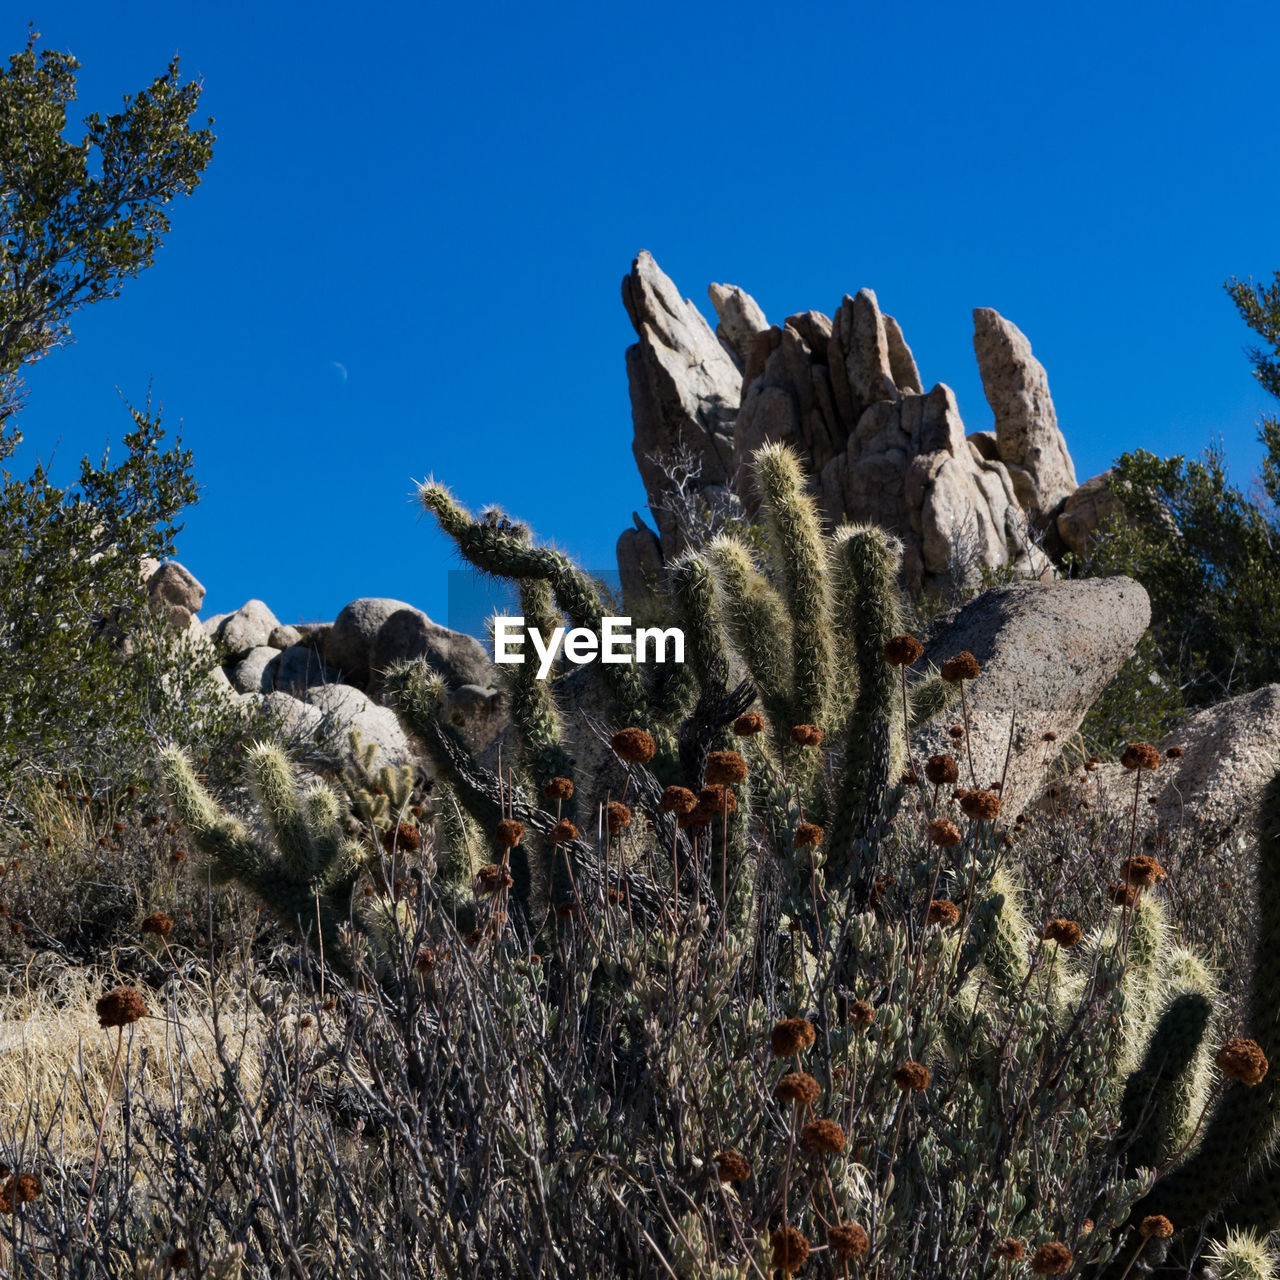 nature, cactus, no people, plant, rock - object, saguaro cactus, outdoors, day, growth, tranquility, beauty in nature, sunlight, blue, clear sky, scenics, sky, prickly pear cactus